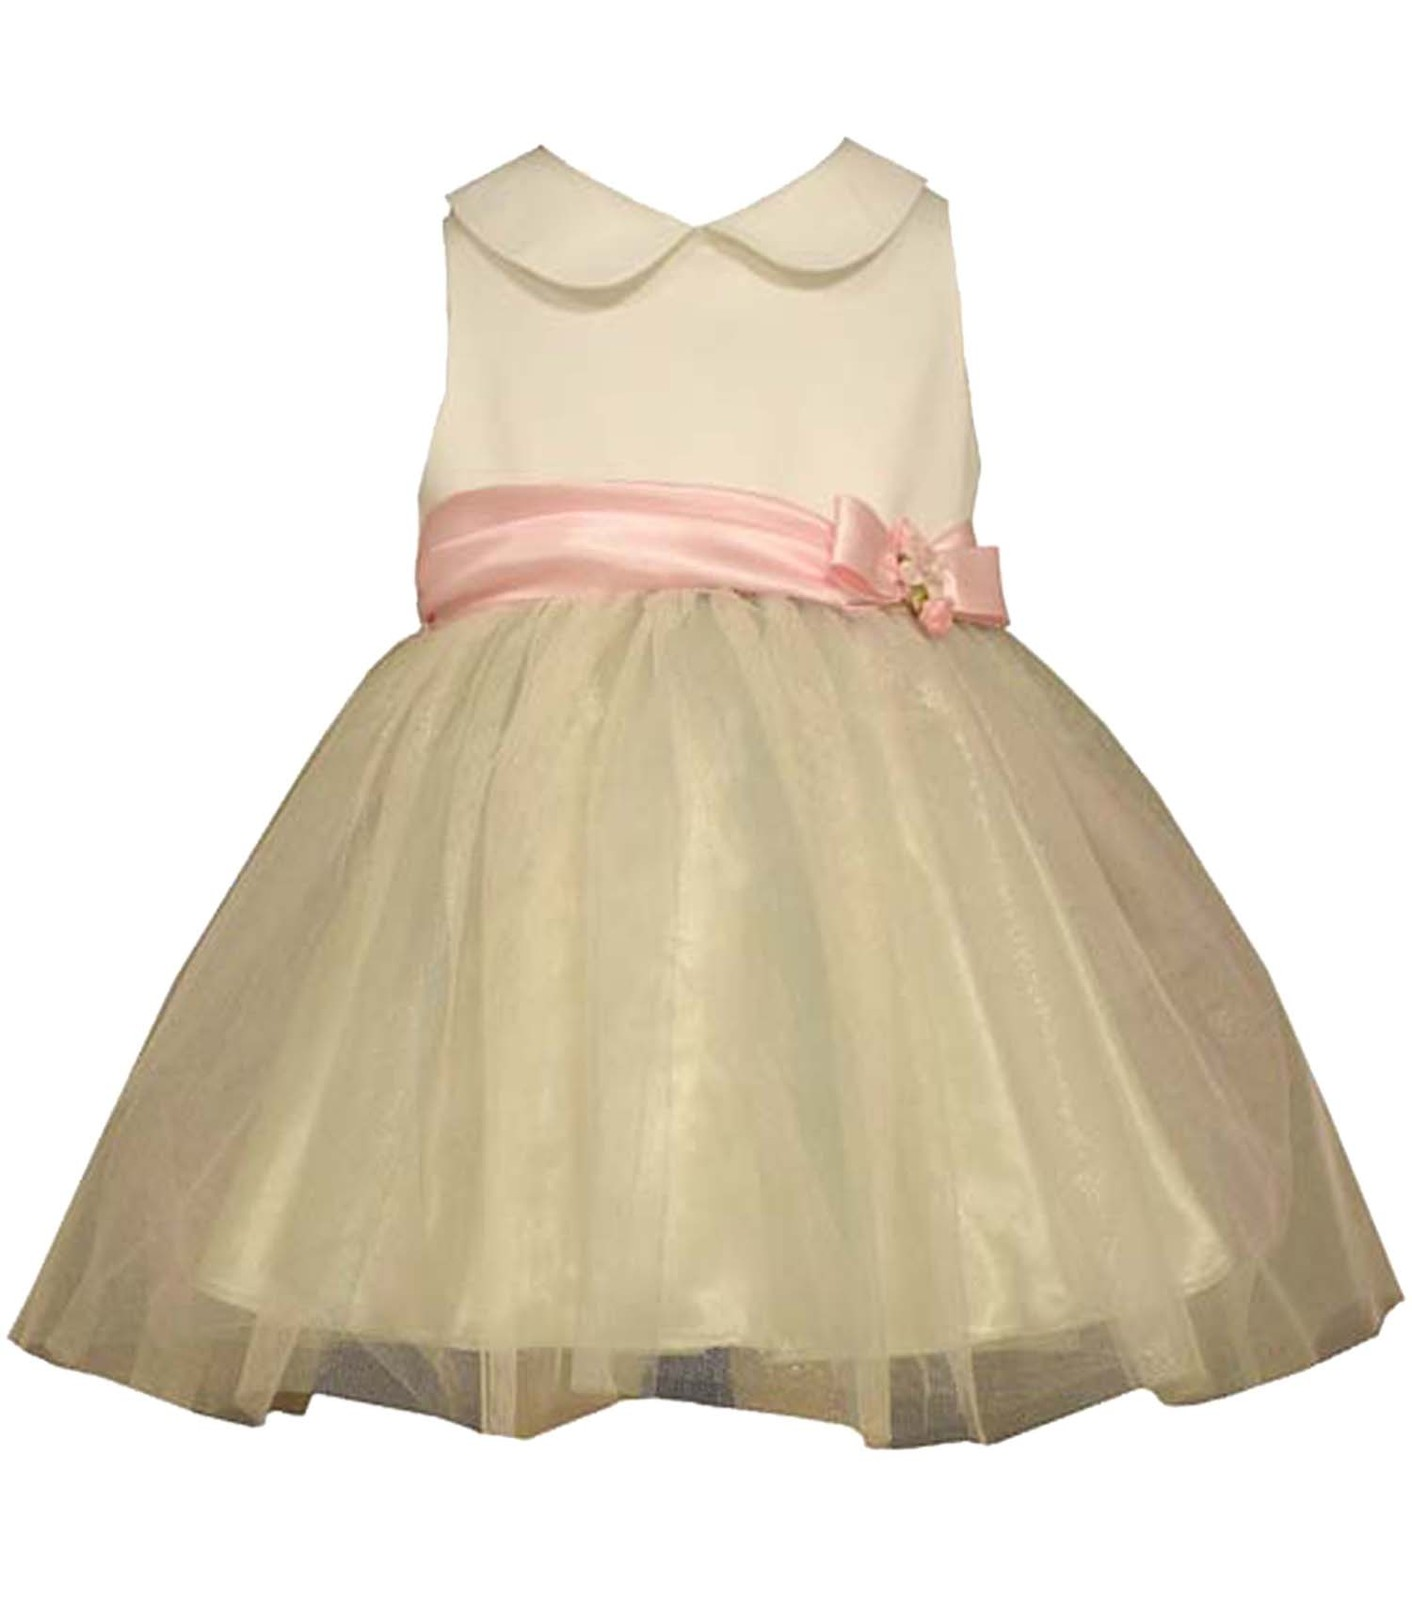 5f4e6ebe99b Baby Girls Newborn Peter Pan Collar Shantung To Tulle Ballerina ...